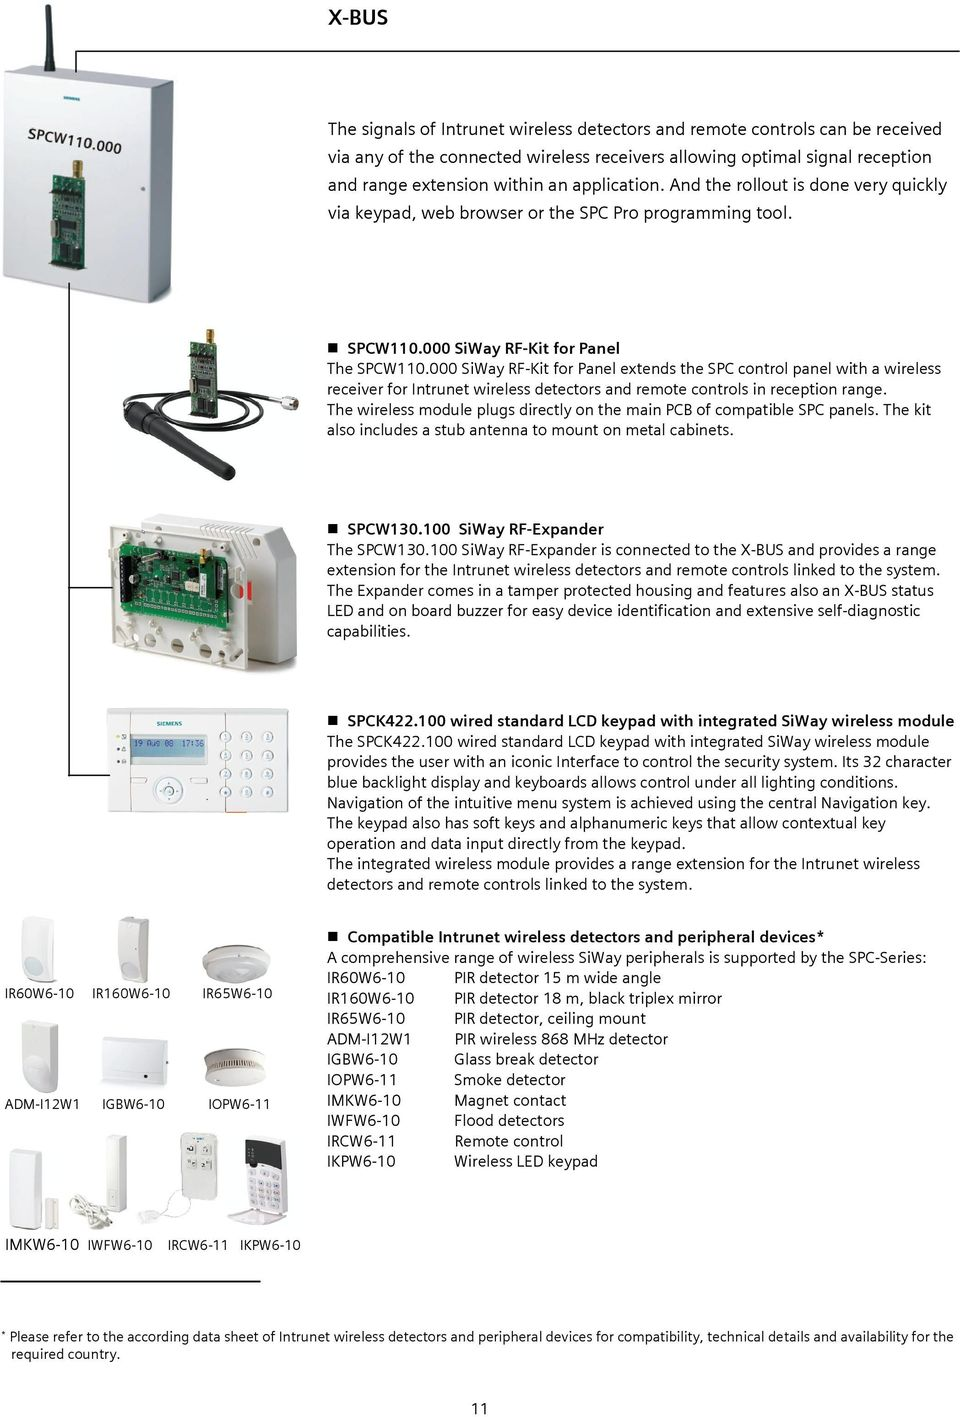 000 SiWay RF-Kit for Panel extends the SPC control panel with a wireless receiver for Intrunet wireless detectors and remote controls in reception range.